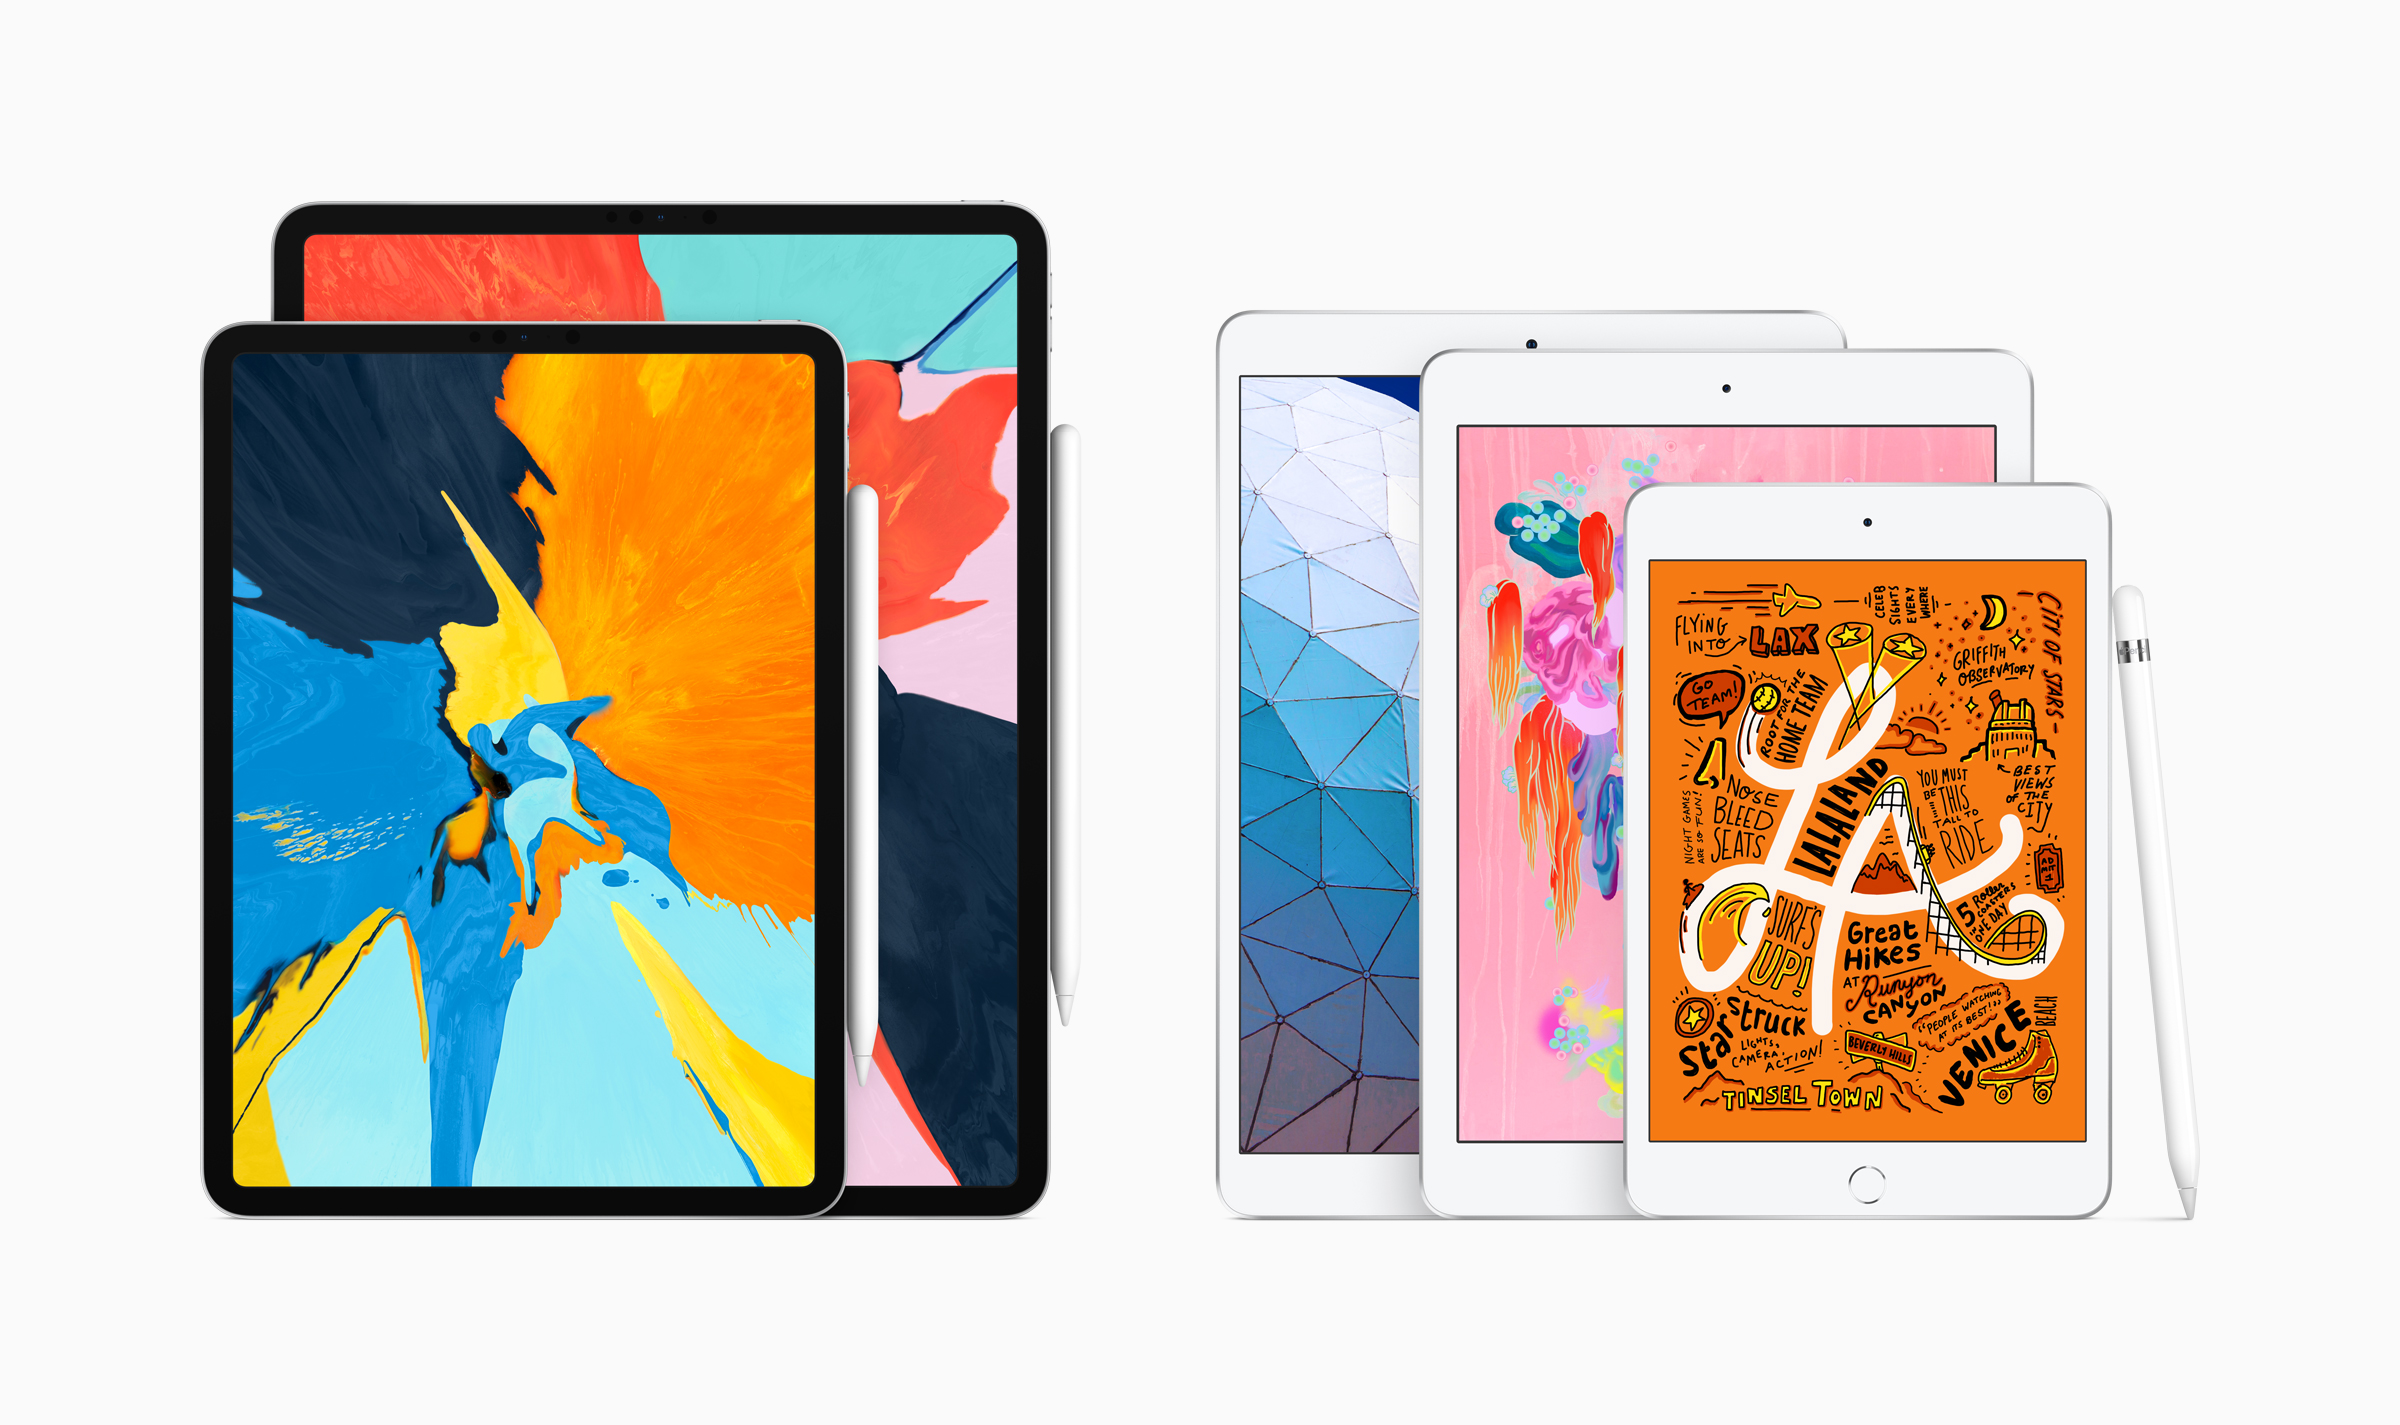 New-iPad-air-and-iPad-mini-with-Apple-Pencil-03182019